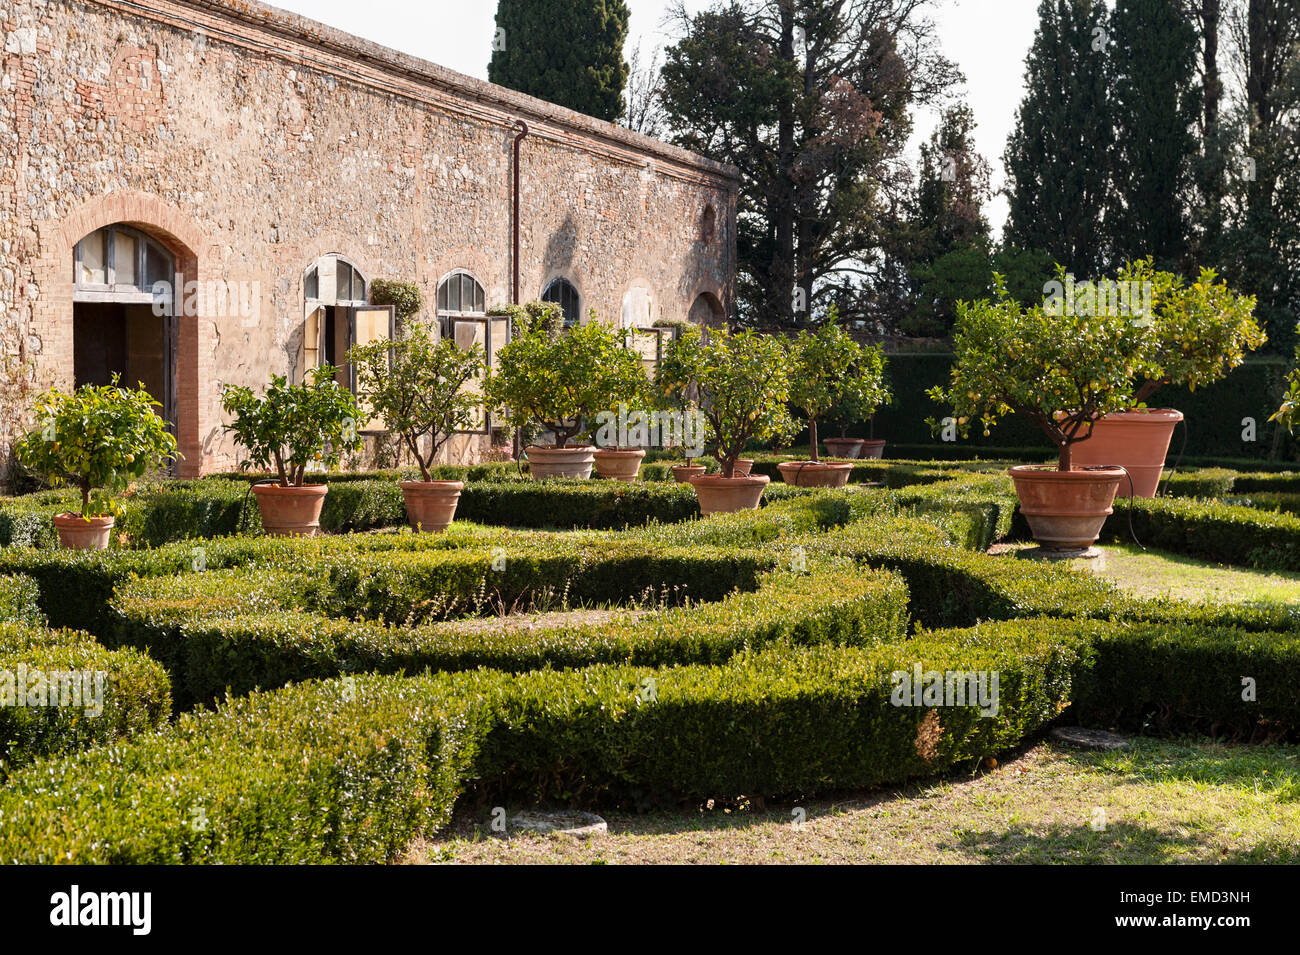 Vicobello, Siena, Tuscany, Italy. The formal Italian garden with clipped box hedges and pots of lemon trees outside Stock Photo